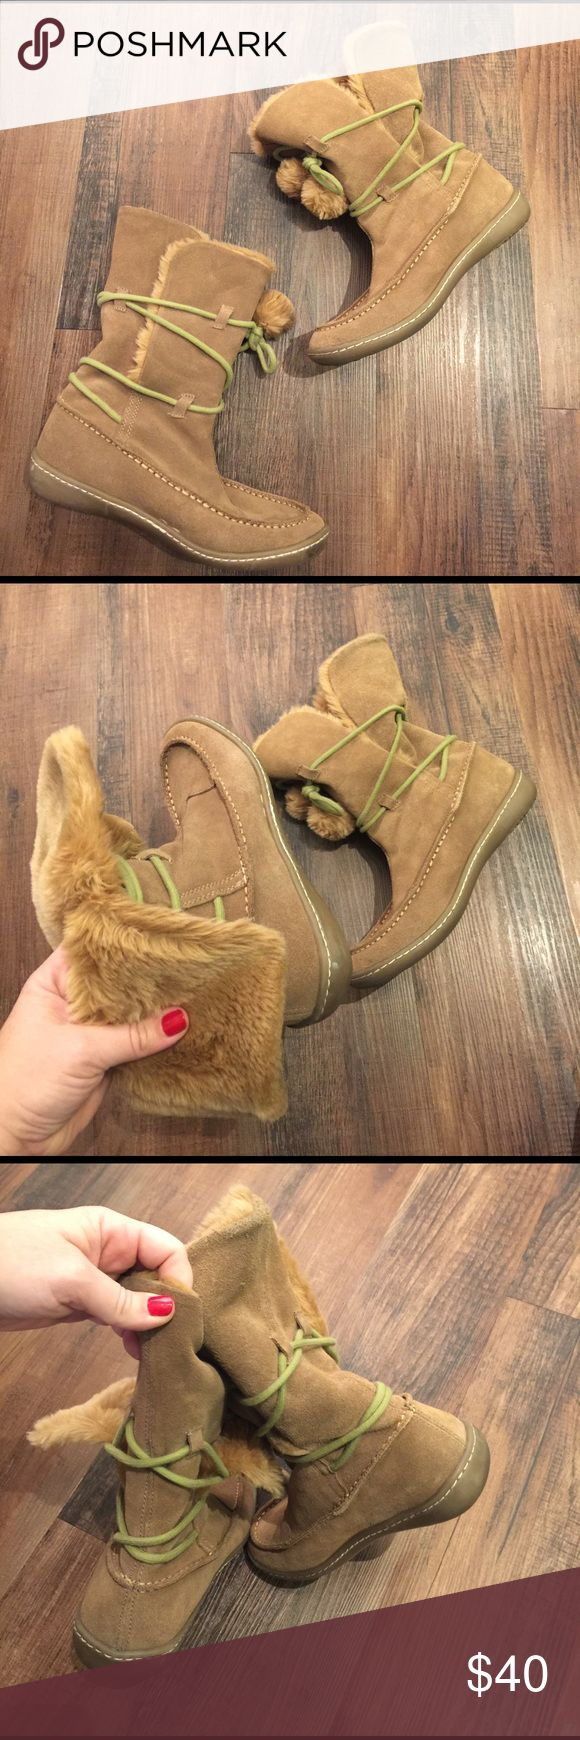 Steve Madden Iglou Pom Pom Boots Steve Madden Iglou Pom Pom Boots.  Suede Moccasin Style boots.  Can be laced up tall or folded over.  Very warm!!  Good condition! Steve Madden Shoes Moccasins